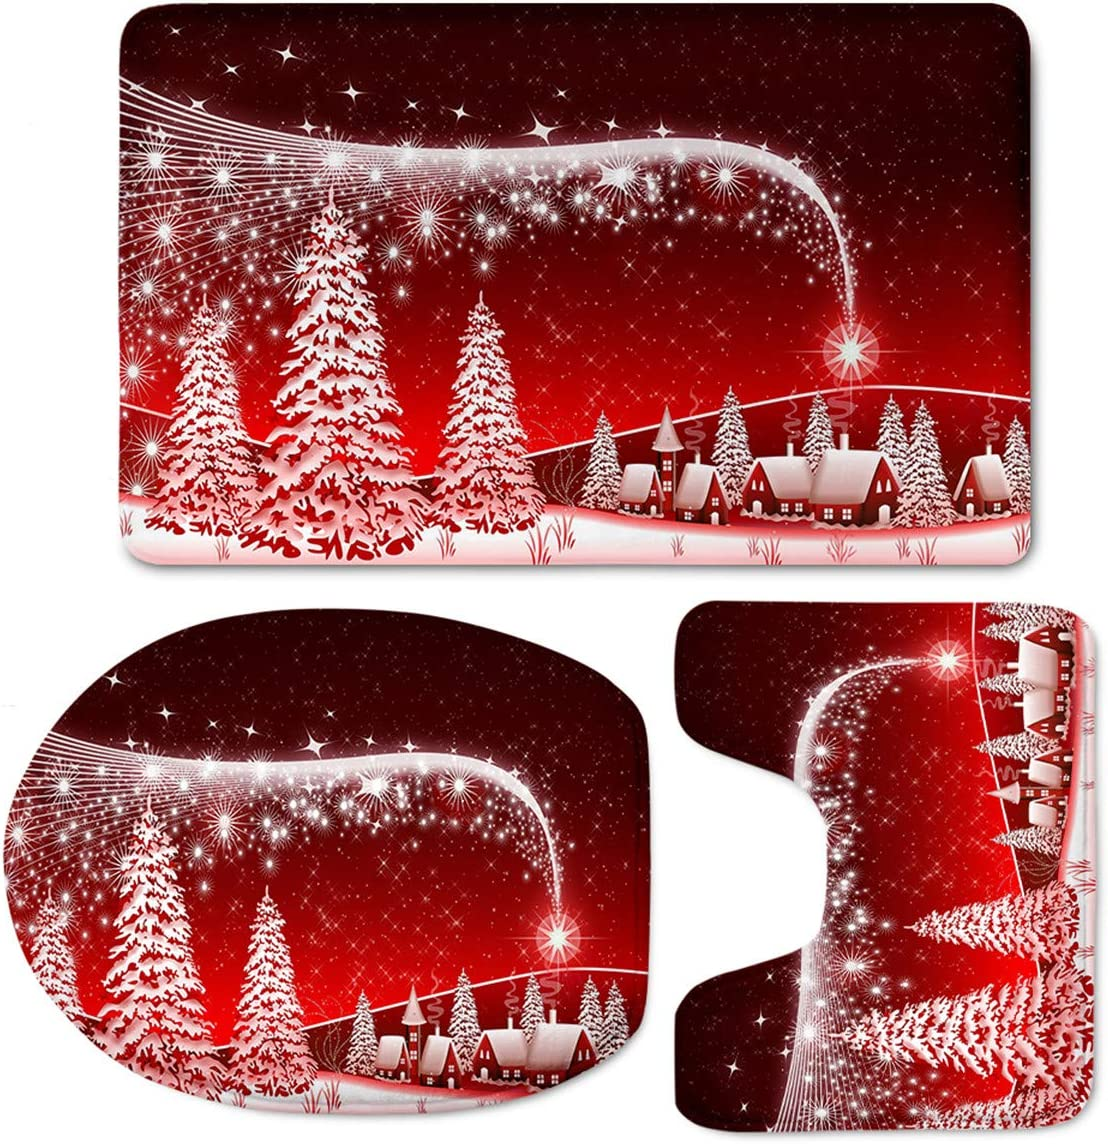 Christmas Door Mats, LedBack Funny Xmas Welcome Red Non Slip Doormats Rugs Indoor Doormat Front Door Floor Rugs Entry Way Patio Doormate Home Decorative Bedroom Rubber Carpet Snow Trees